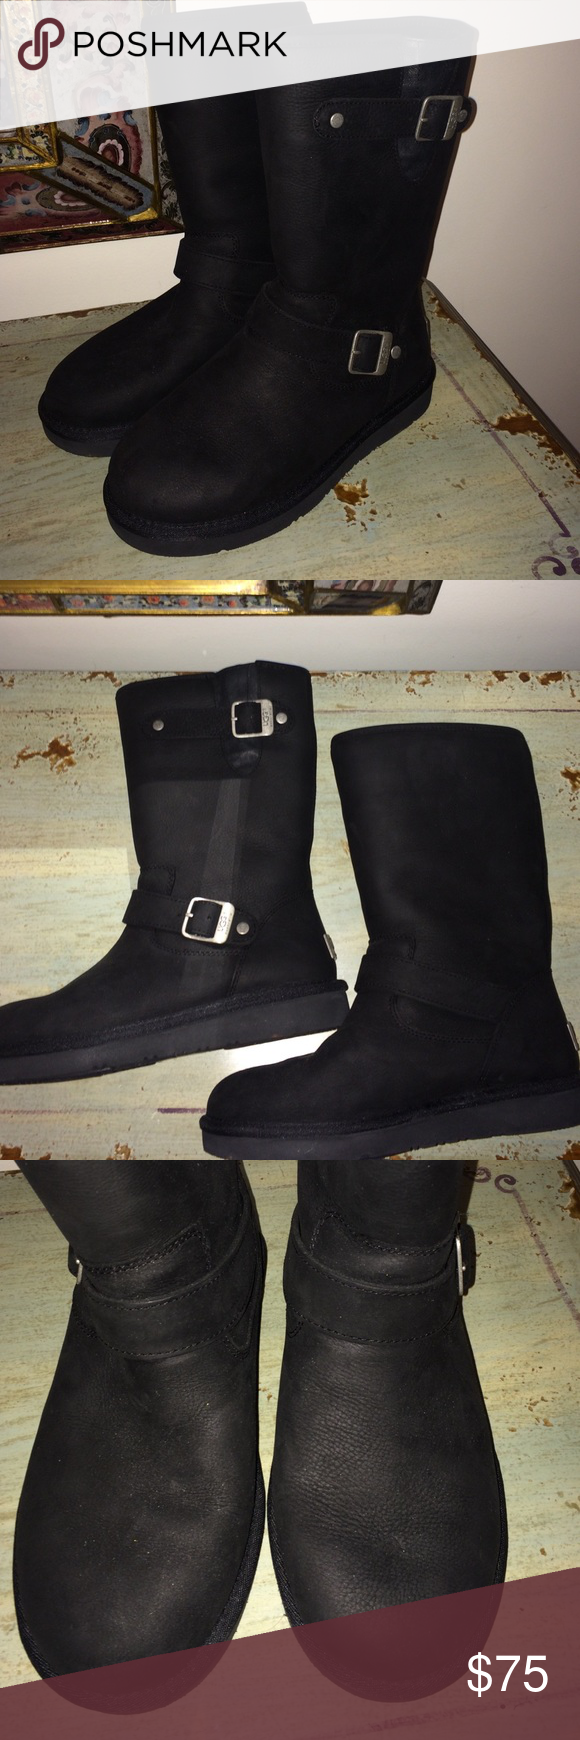 d030849a4a4 UGG Sutter Boots Size 7. RESERVED for ALICIA | Pinterest | Rain boot ...